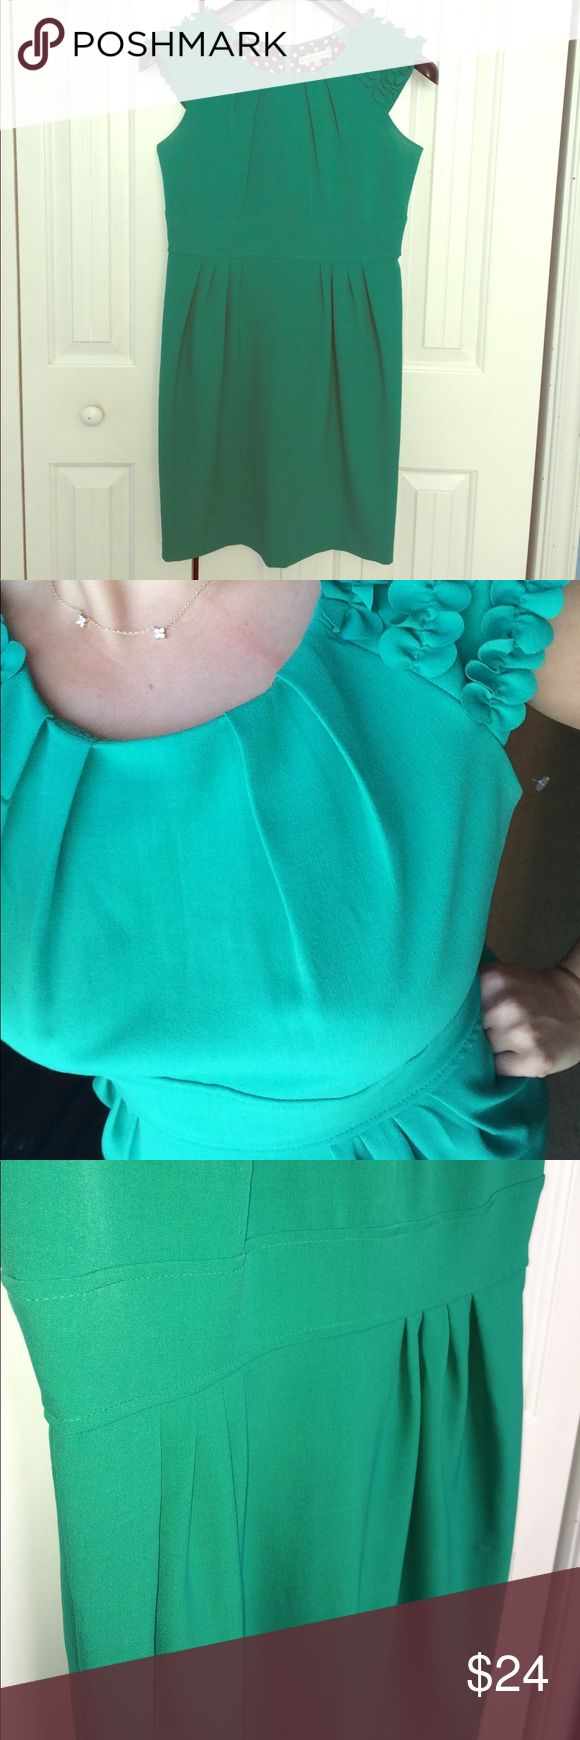 HOLIDAY Green Dress with Petals Pleating in just the right places to accentuate curves.  Sleeveless with almost cap sleeves. Hidden back zipper with a flattering scoop neckline. So fun for the holidays or spring. Dress it up or let the sleeves do all of the work! Sandra Darren Dresses Midi